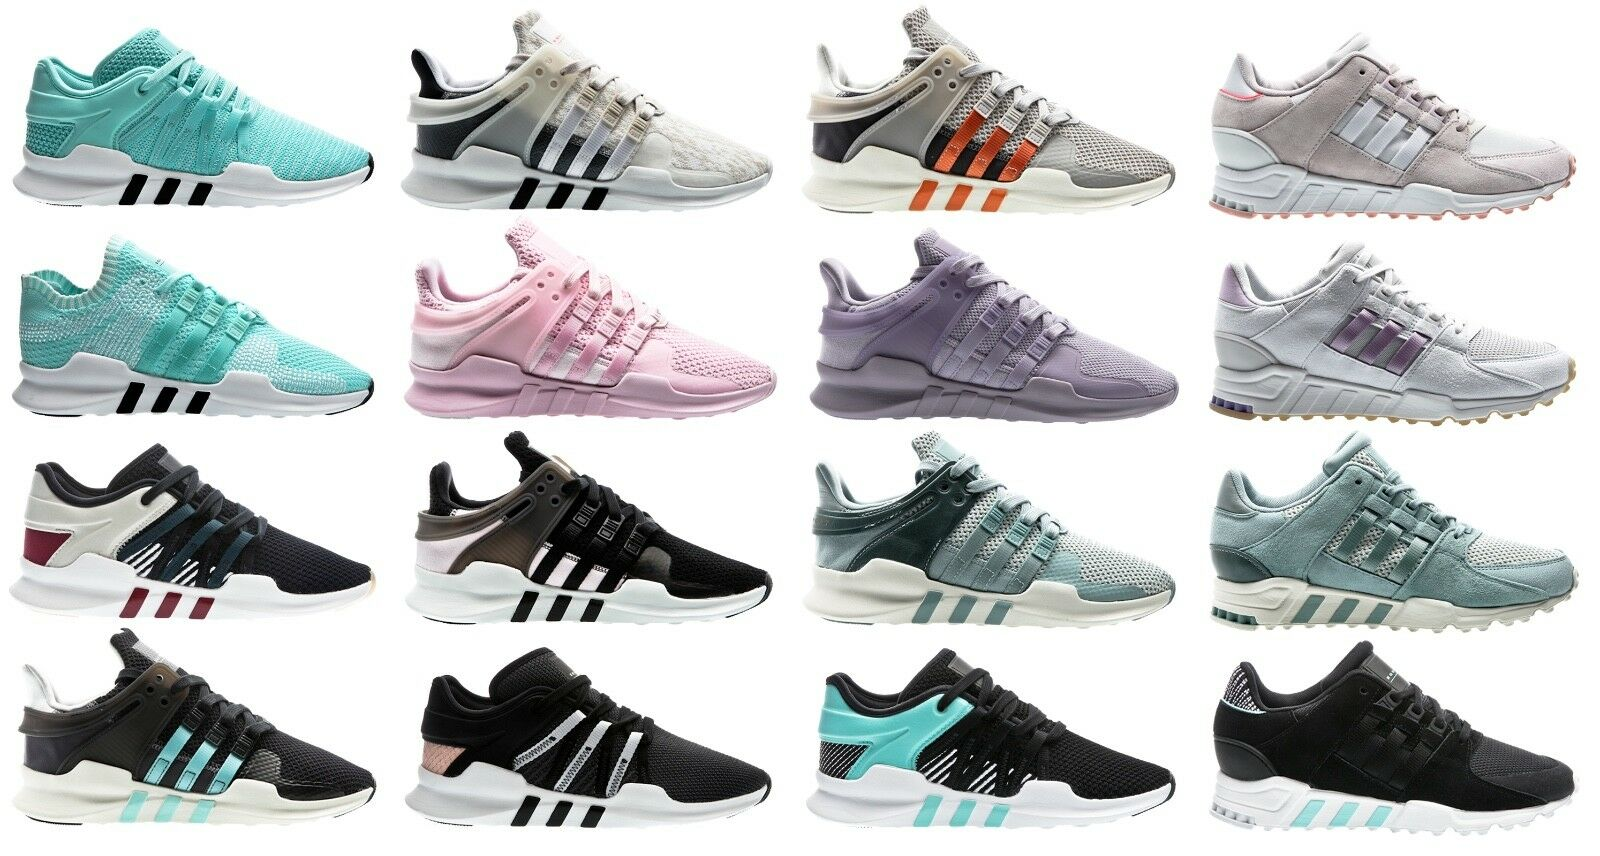 Adidas Originals EQT equipment W Women cortos señora zapatos Girl Shoes